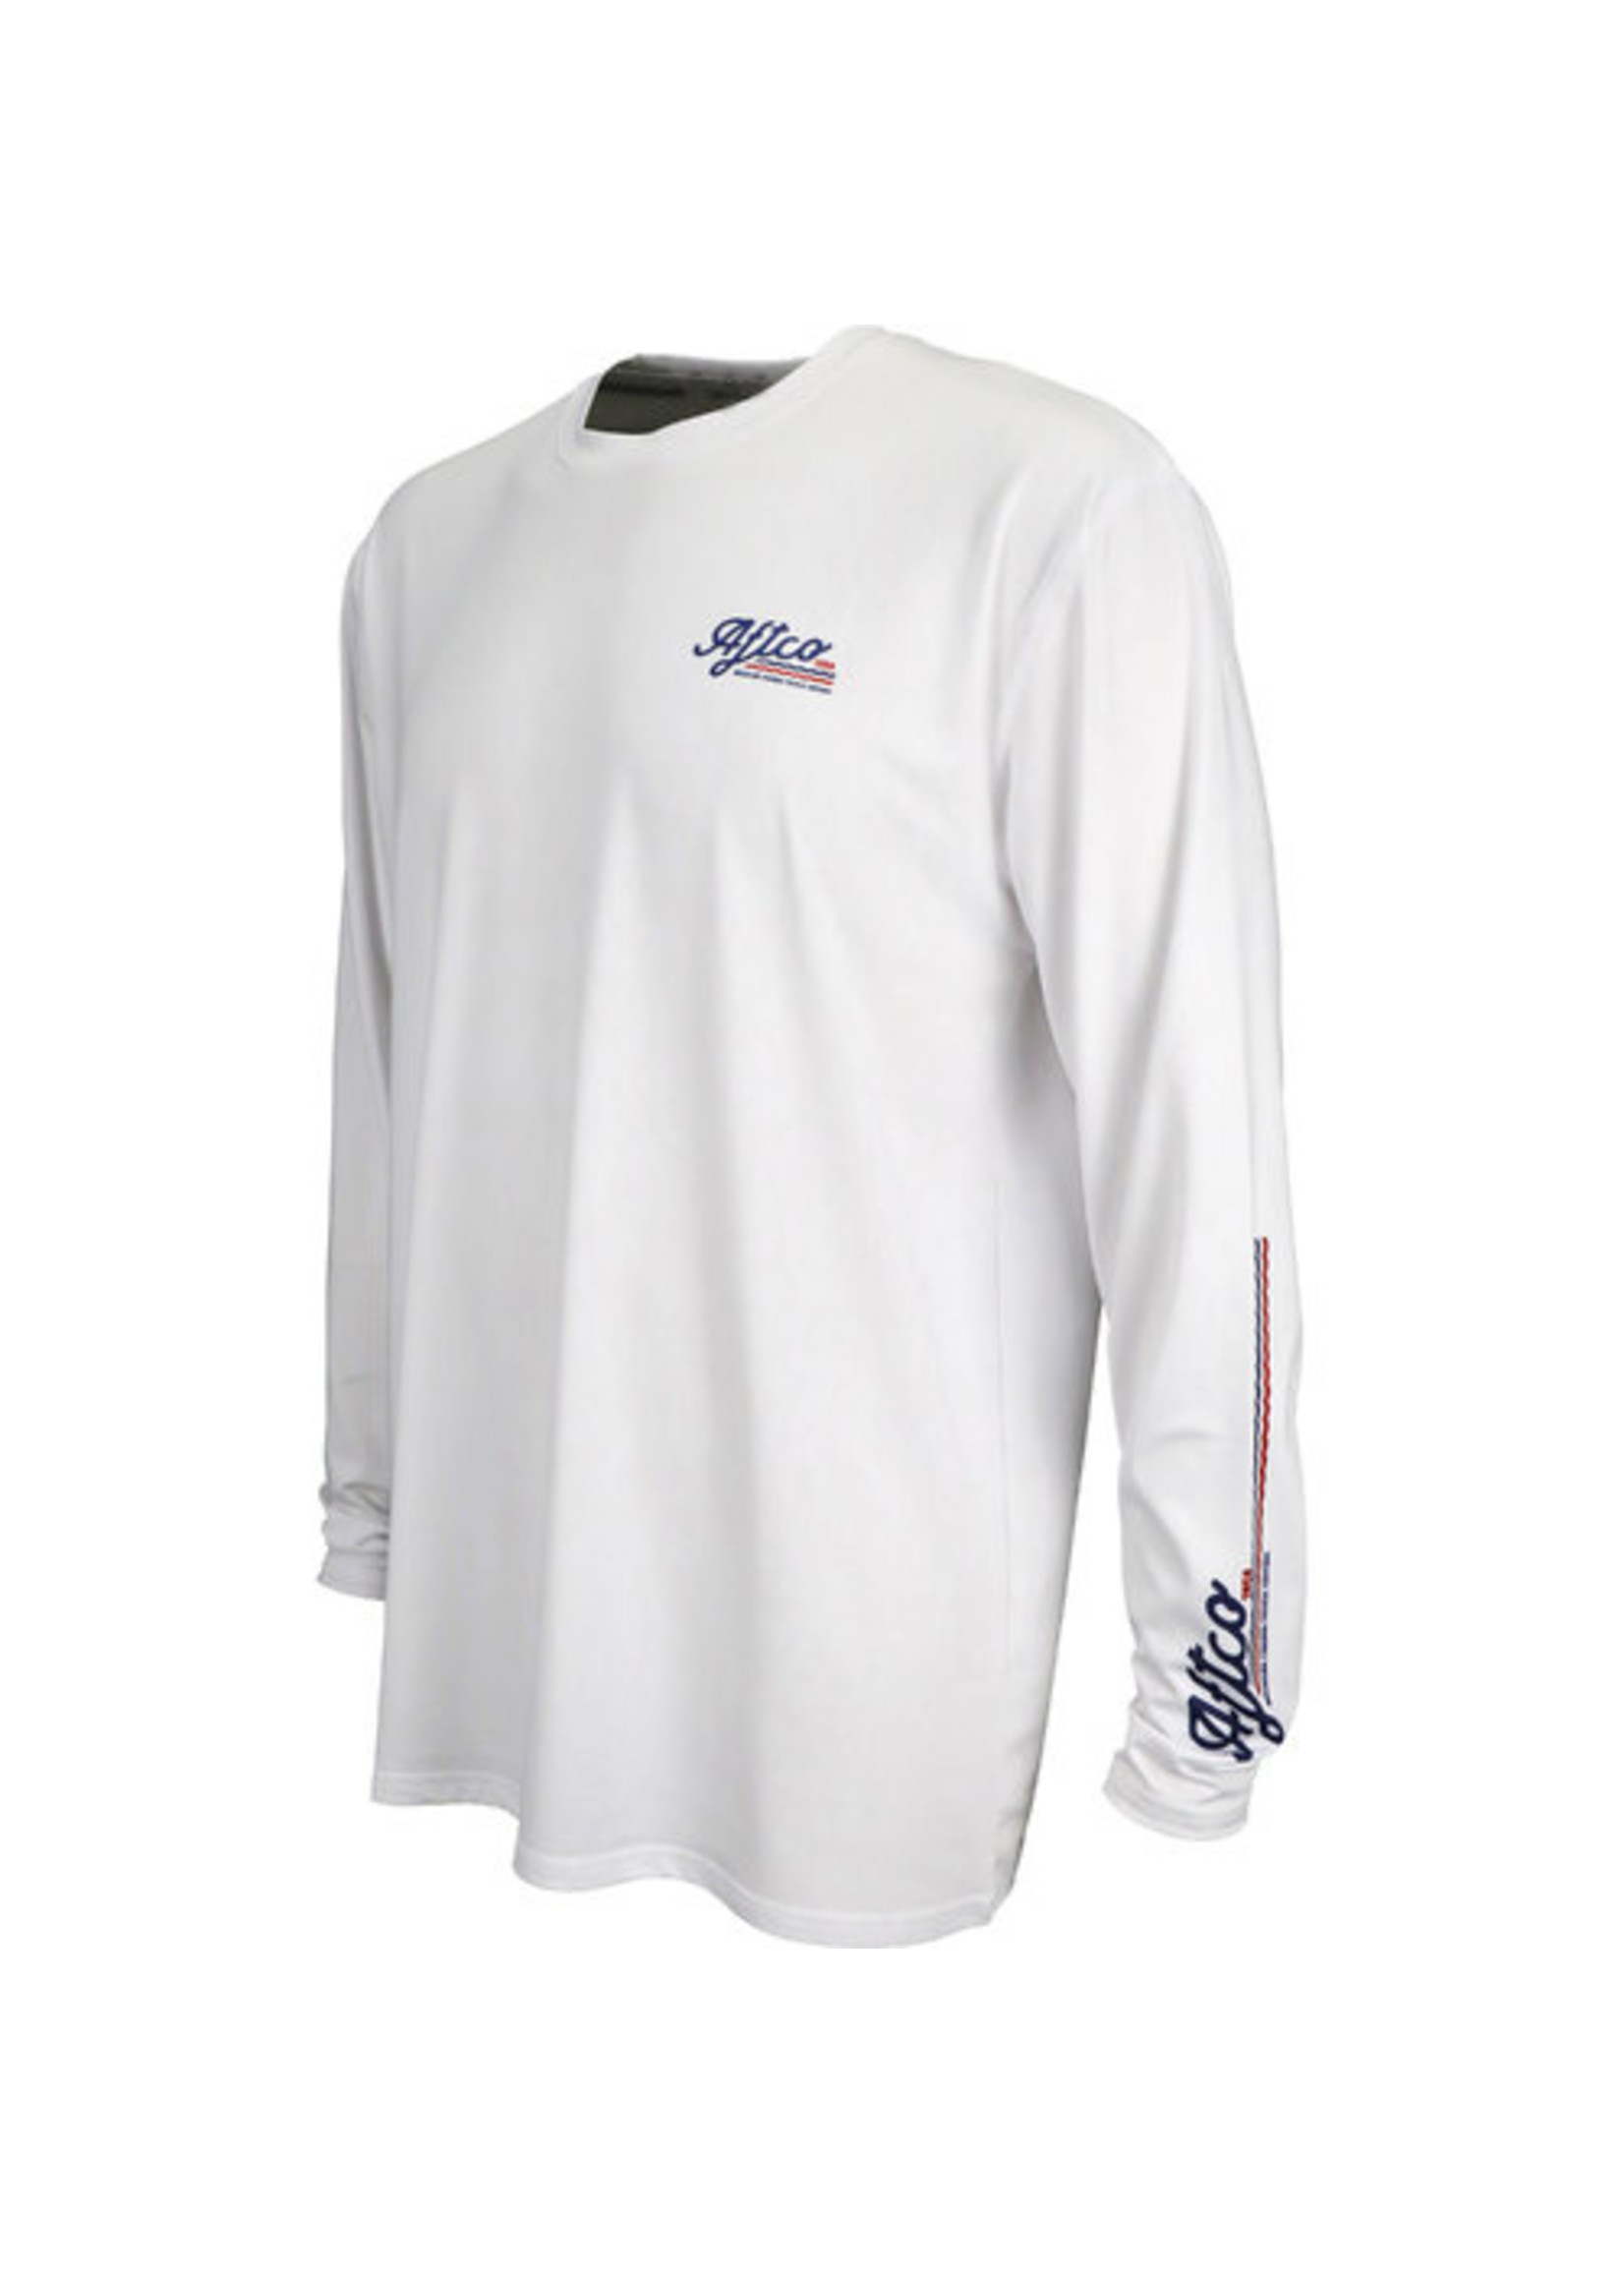 AFTCO Aftco Sonic Performance LS Shirt